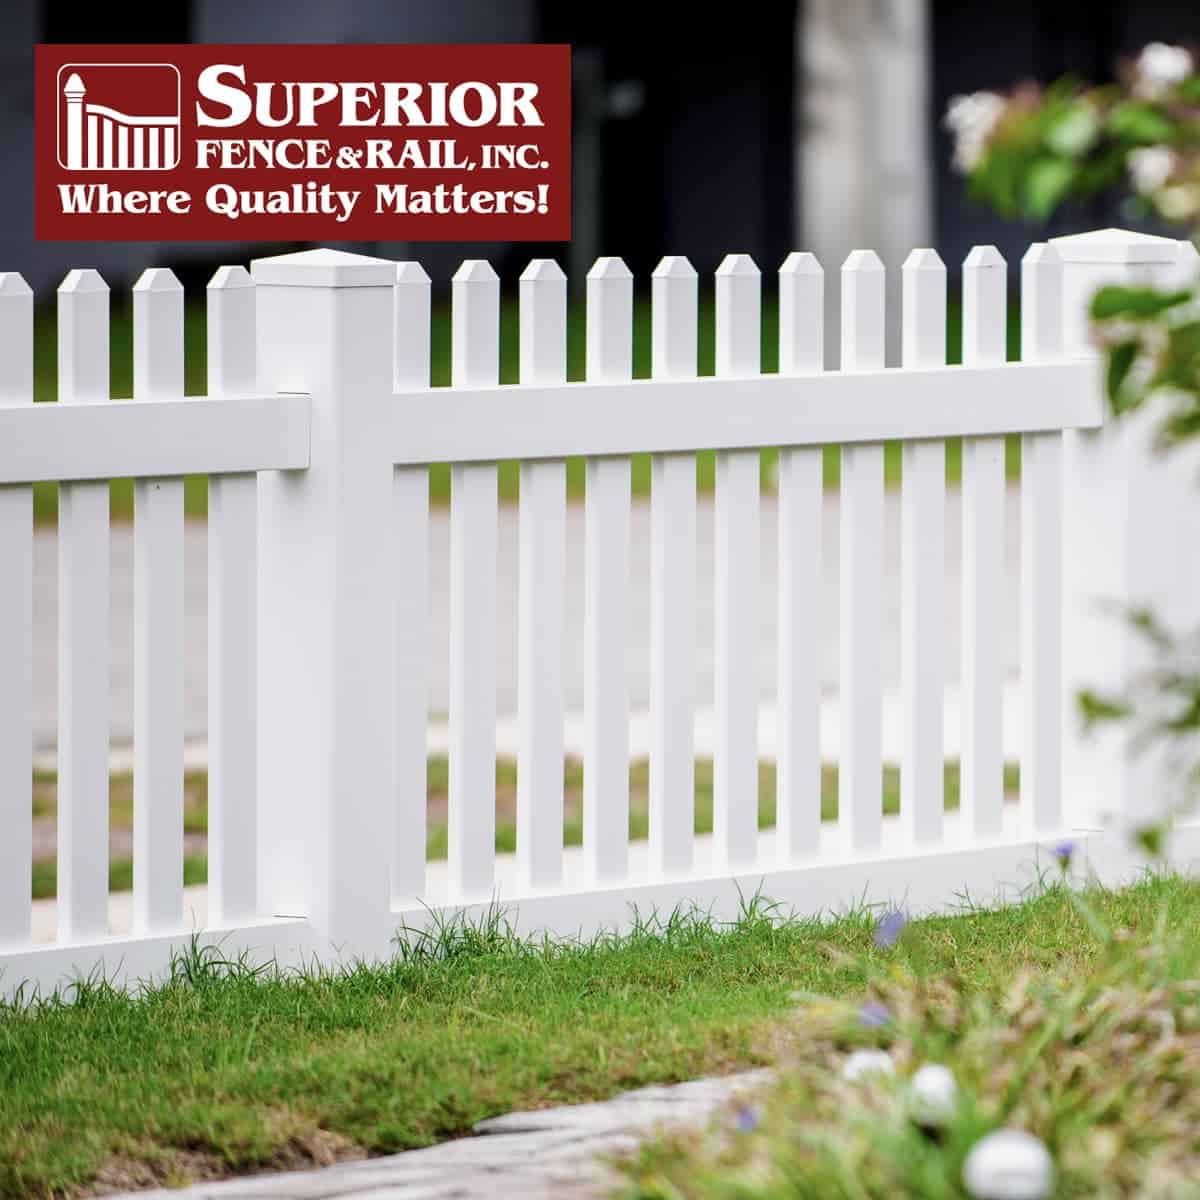 Myers Park fence company contractor